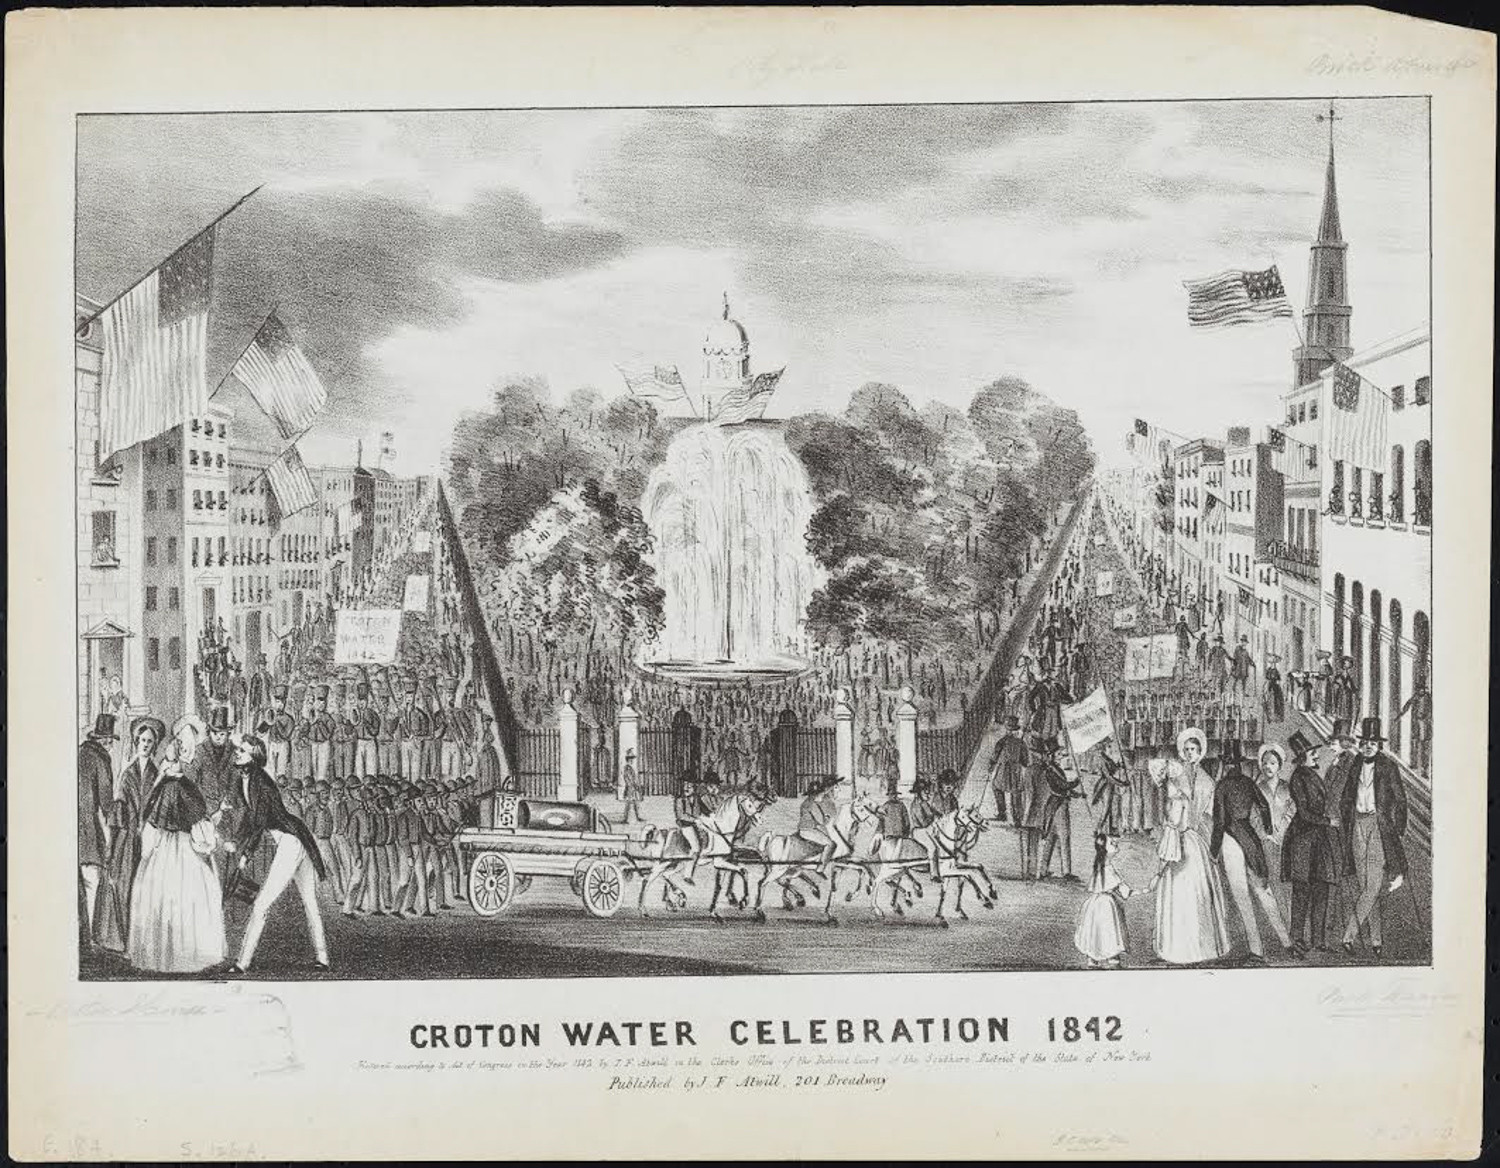 The Croton Aqueduct opened to great fanfare and a parade in 1842, bringing fresh water to New York City for the first time, says Susan Johnson, senior curatorial associate at The Museum of the City of New York.